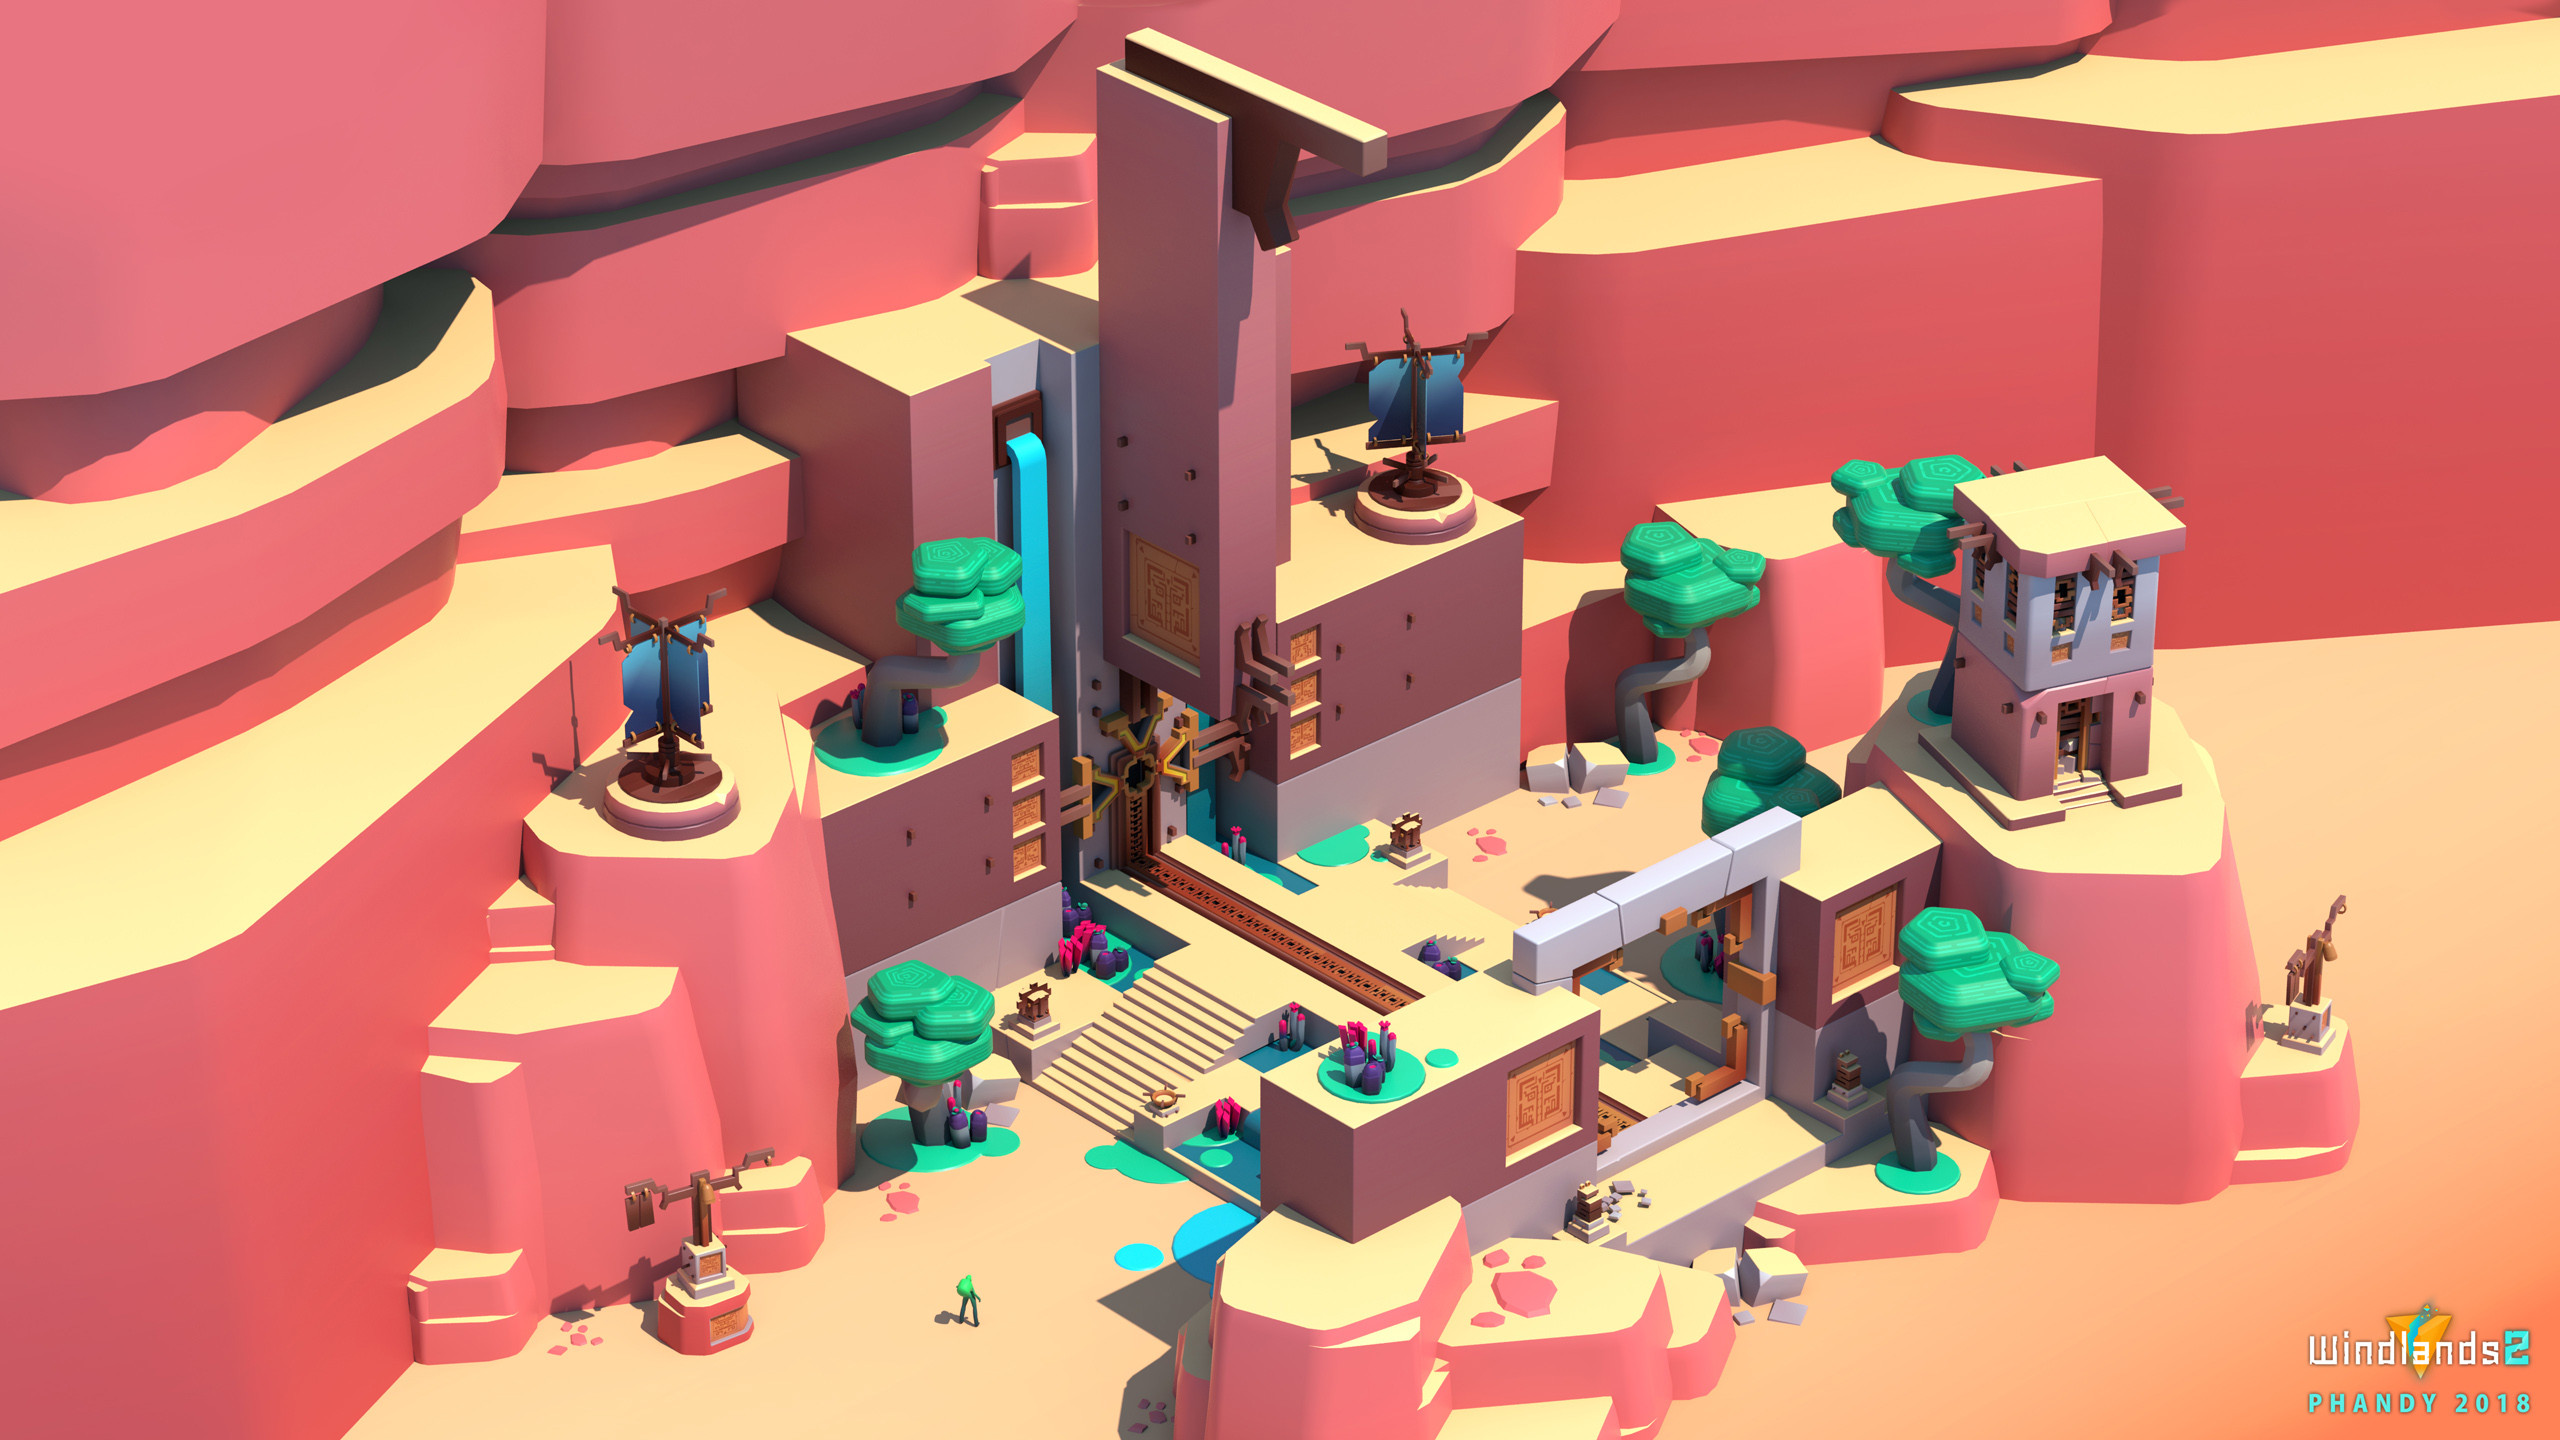 A key area of the game, dressed up with other assets.